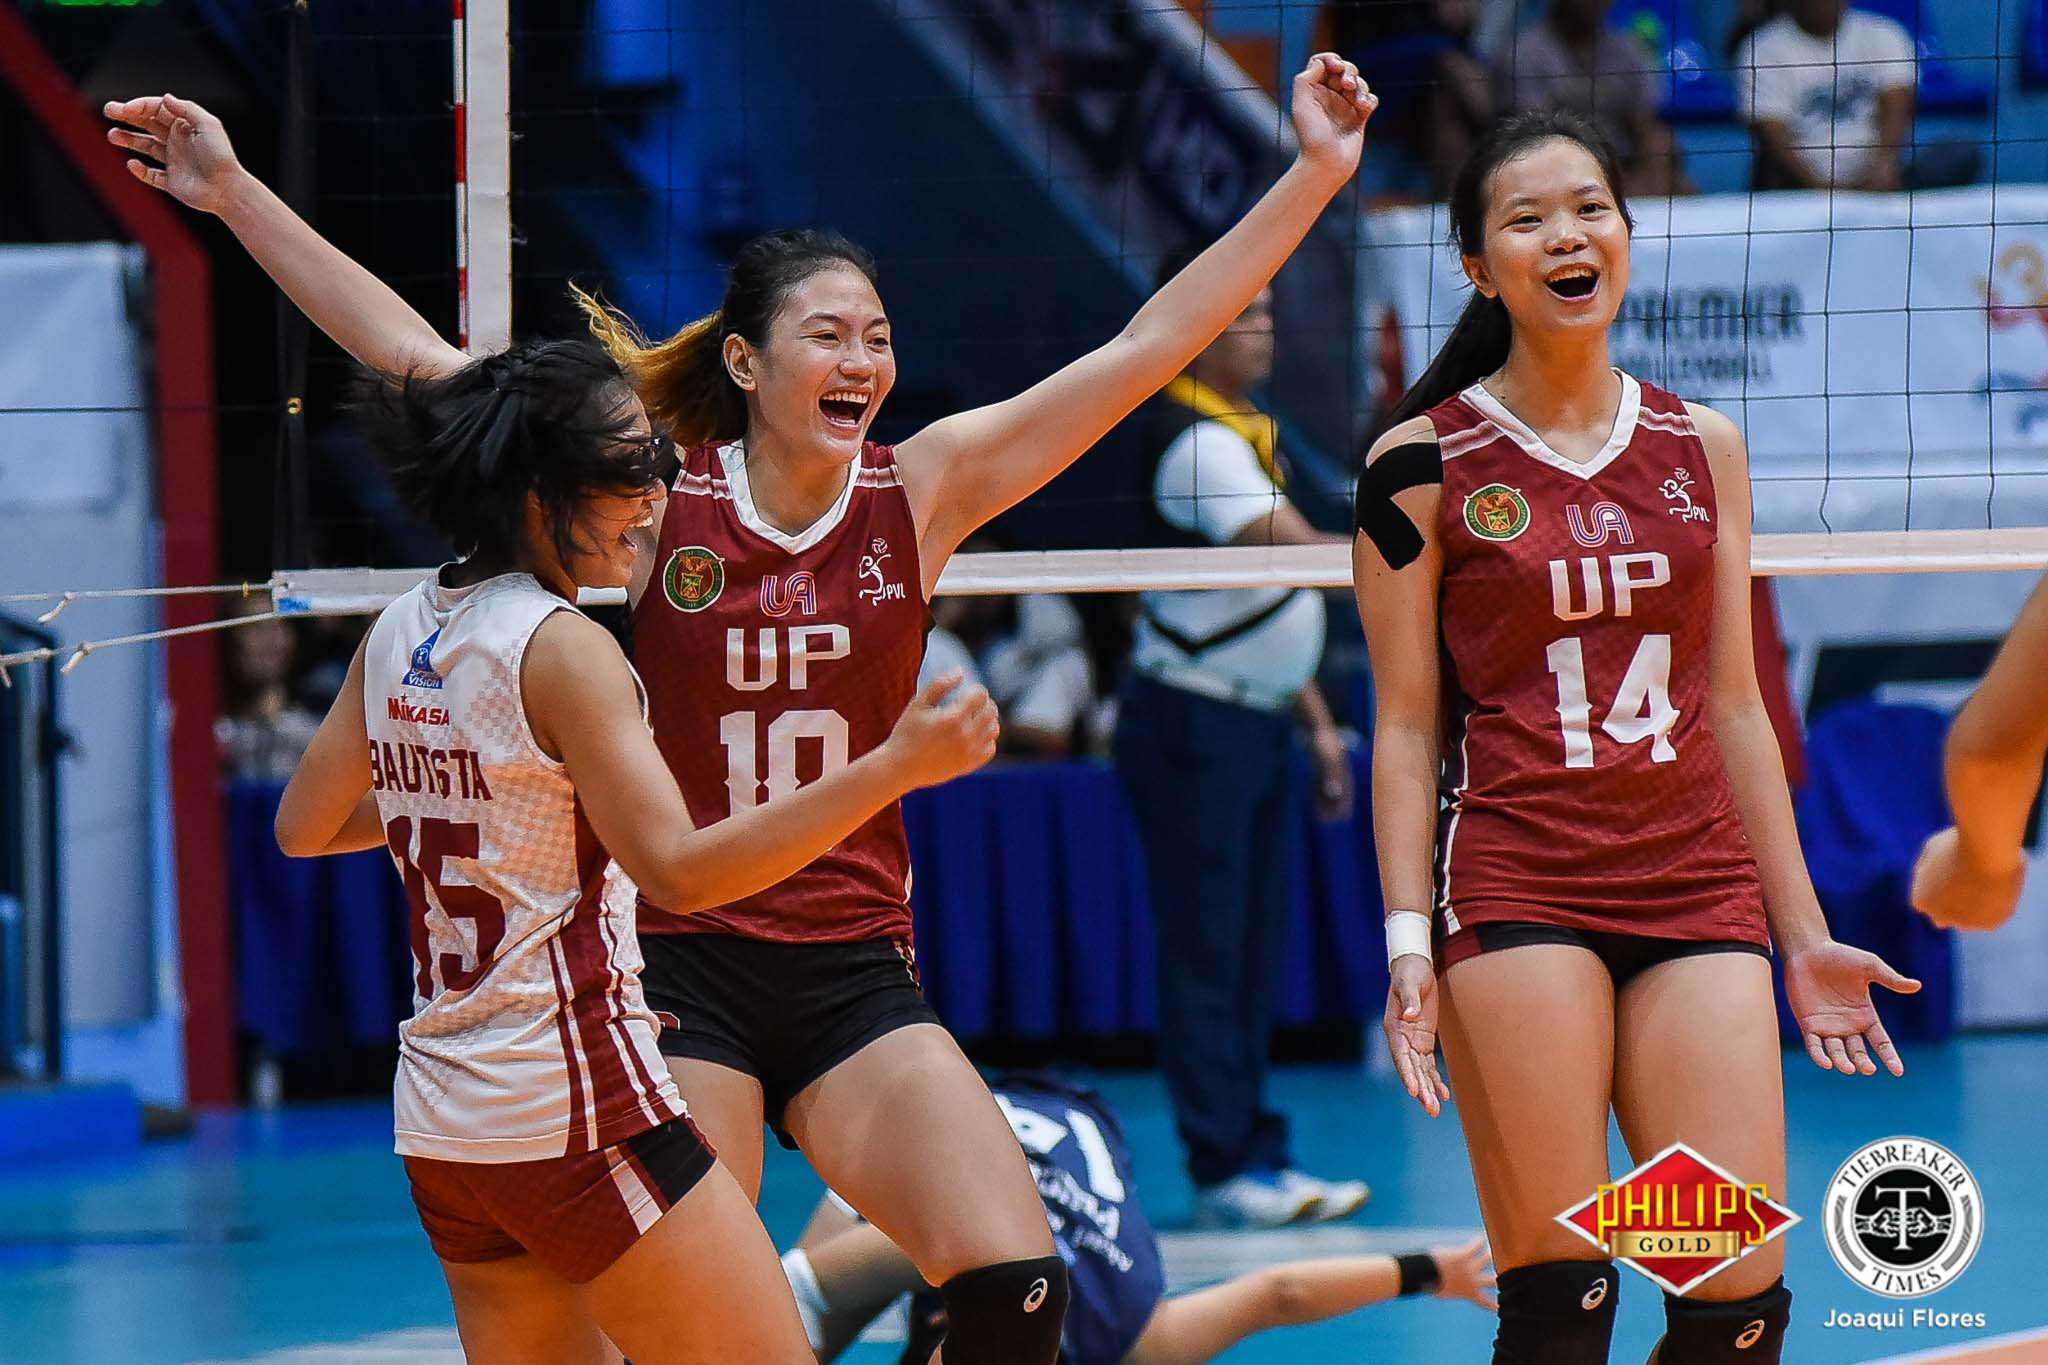 Tiebreaker Times Lady Maroons break into Finals, quell Lady Falcons AdU News PVL UP Volleyball  UP Women's Volleyball Rem Altomea Marian Buitre Lea Perez Isa Molde Godfrey Okumu Eli Soyud Ayel Estranero Airess Padda Adamson Women's Volleyball 2018 PVL Women's Collegiate Conference 2018 PVL Season